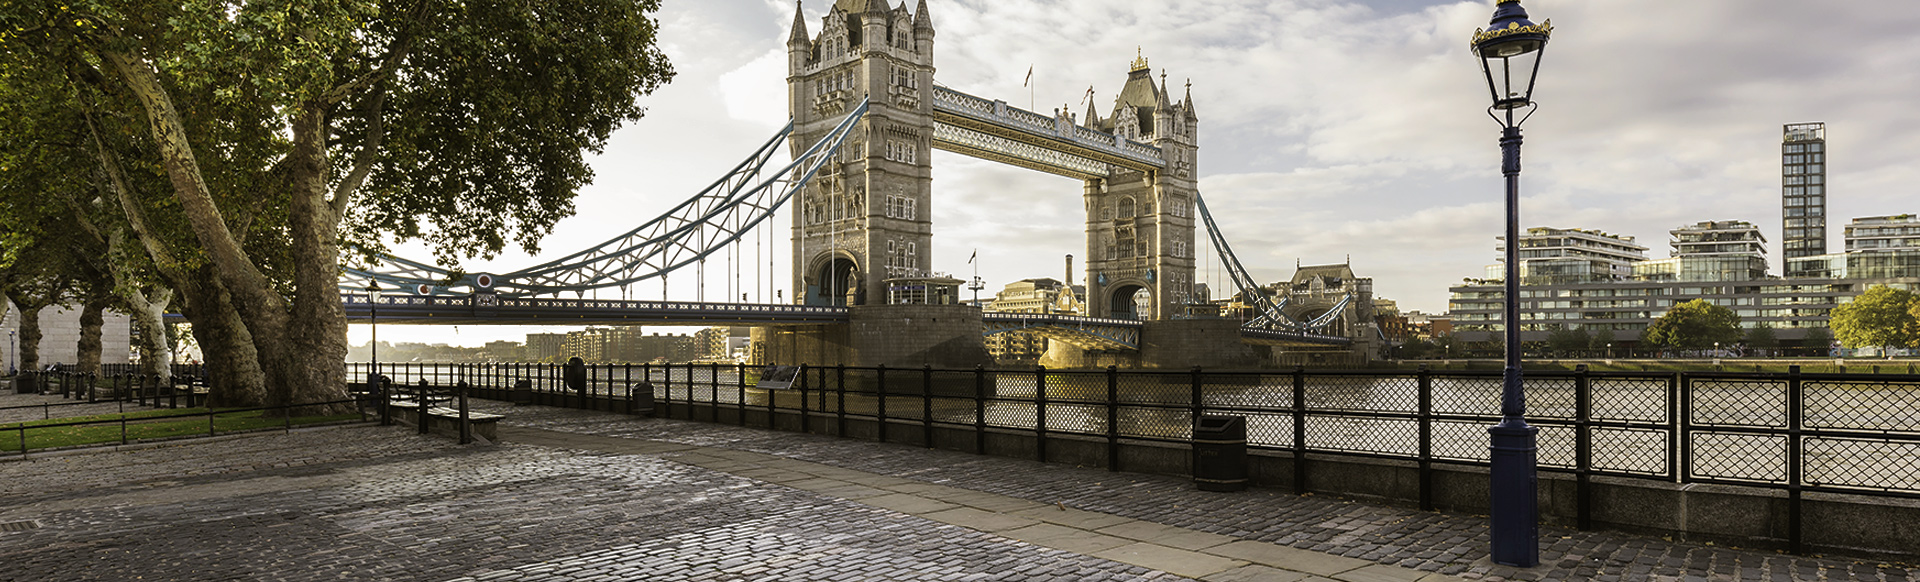 A cobbled riverside pathway in the foreground with Tower Bridge and the river Thames in the background.